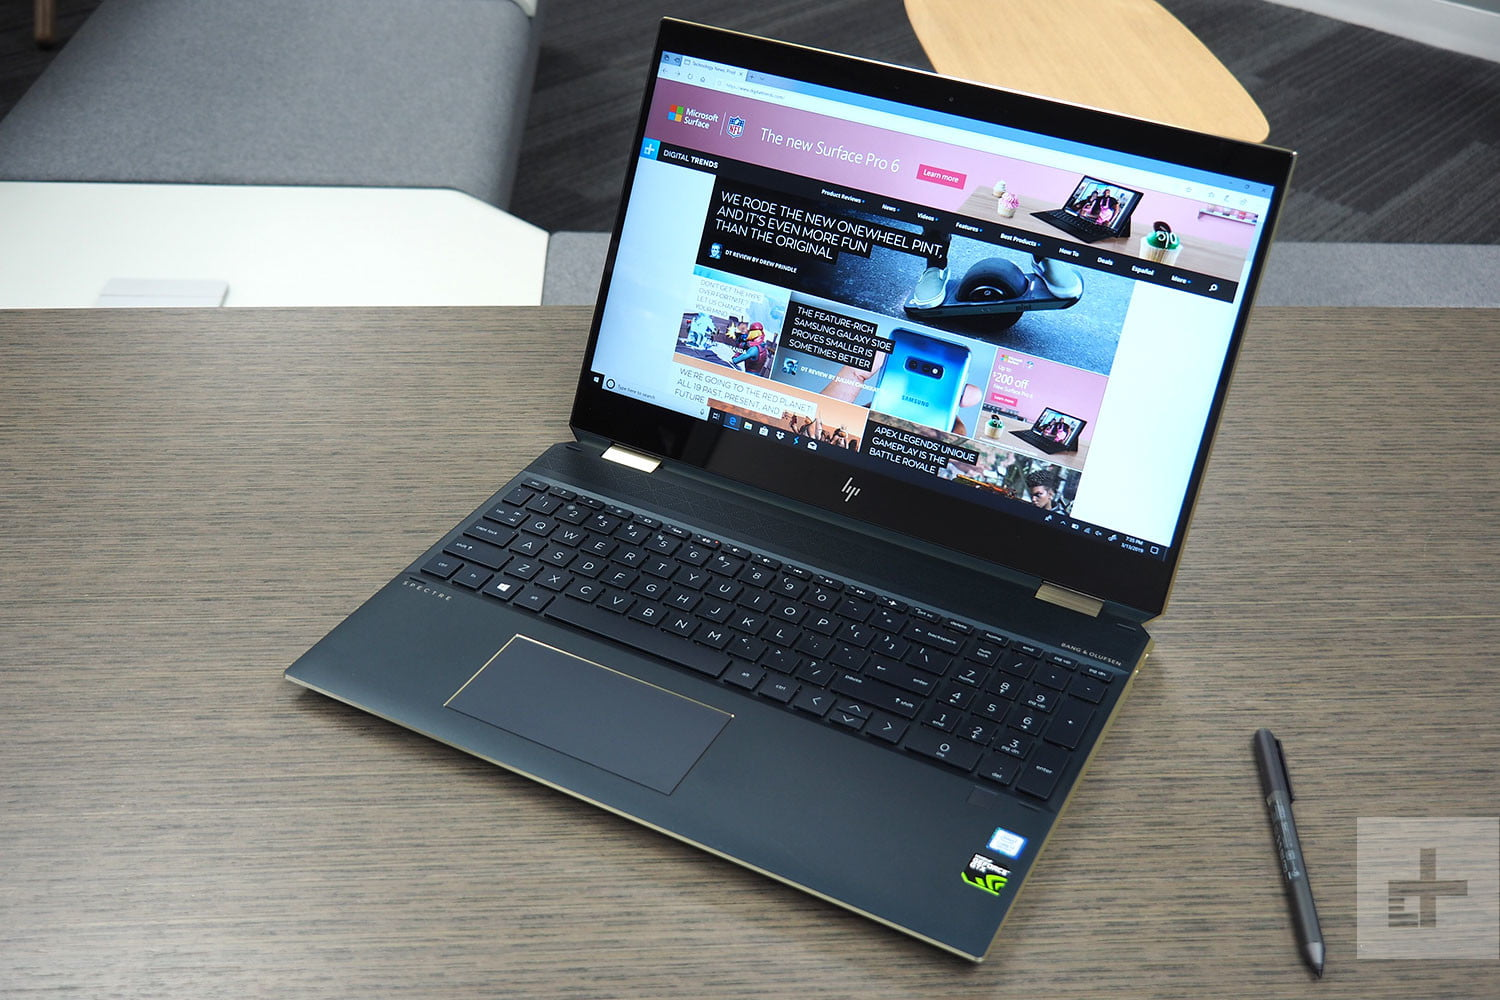 HP's new 2-in-1 is the go-anywhere, do-anything laptop you've been waiting for